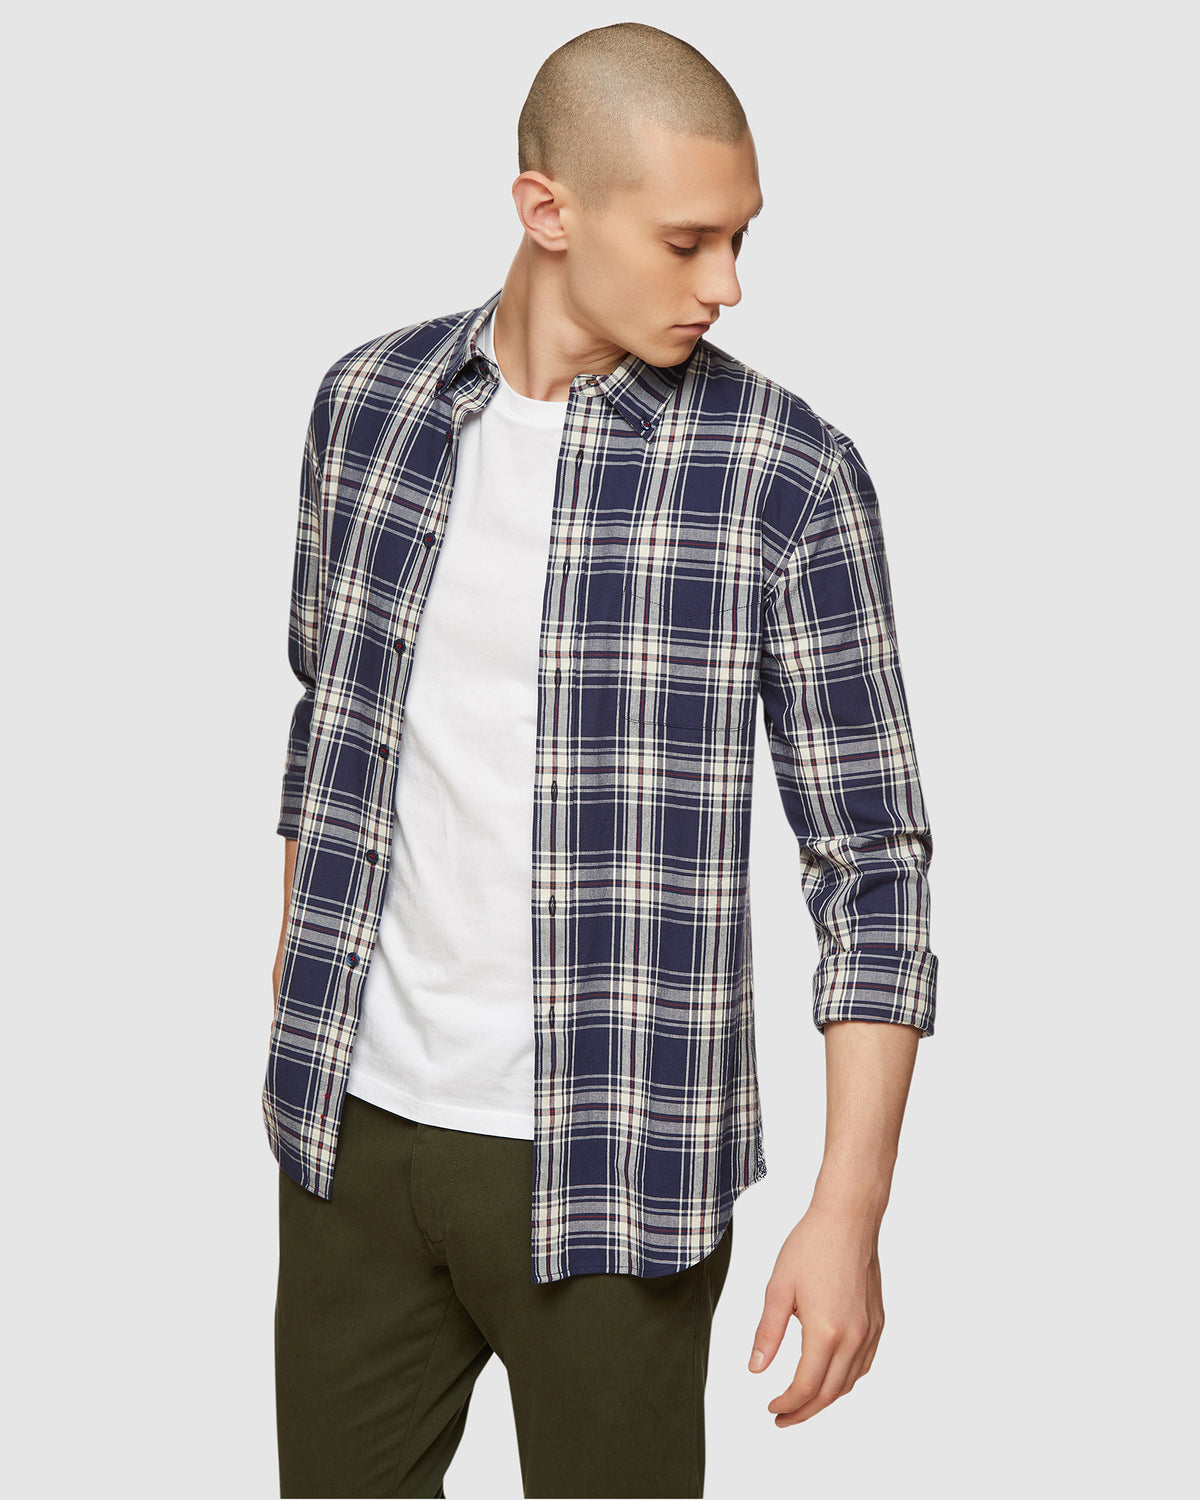 UXBRIDGE CHECKED SHIRT NAVY